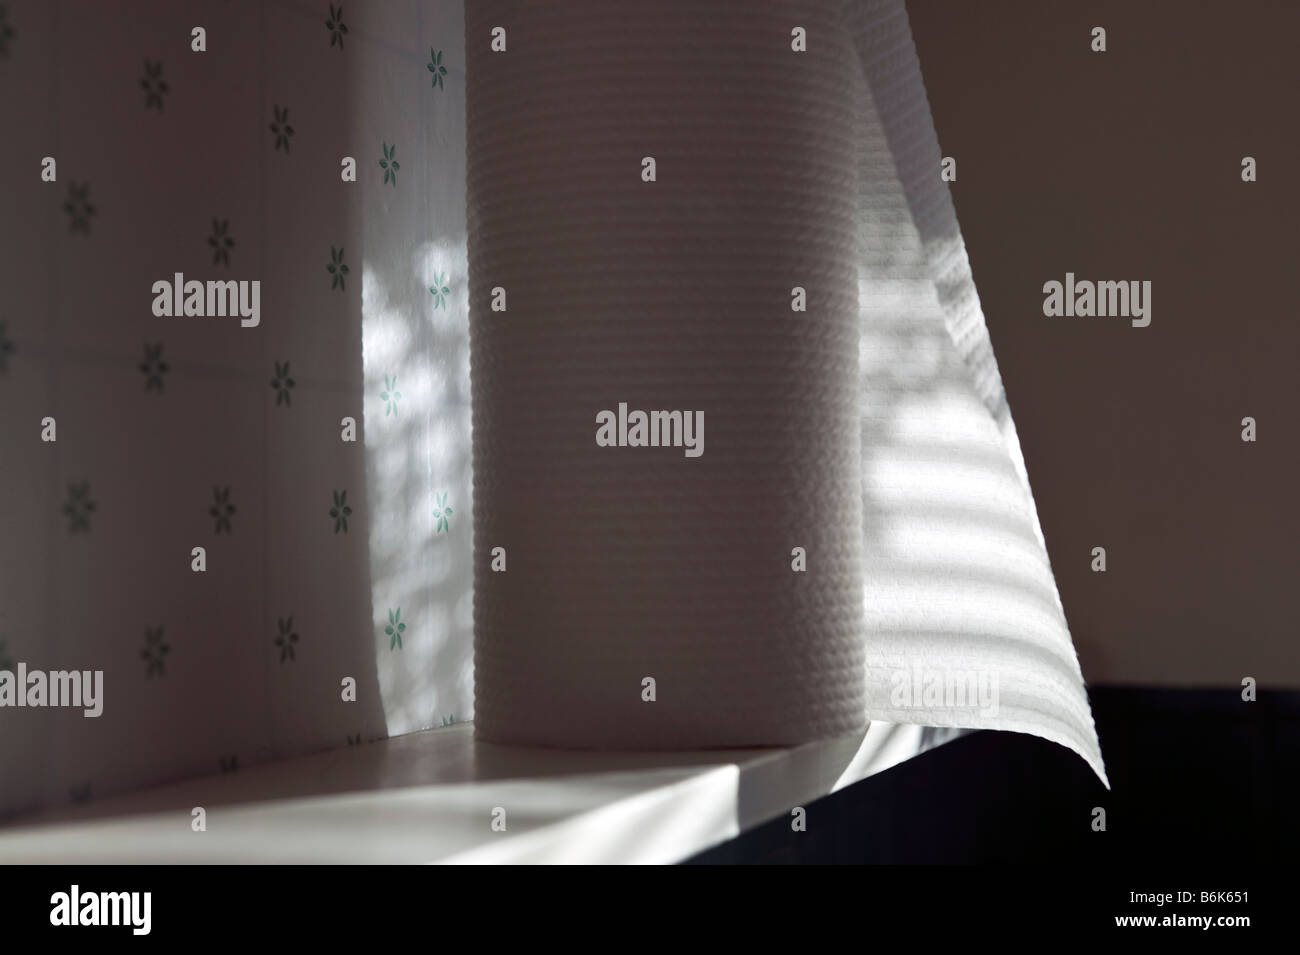 Sunlight streaming through venetian blinds create a striped pattern of shadows on a roll of paper towels. - Stock Image